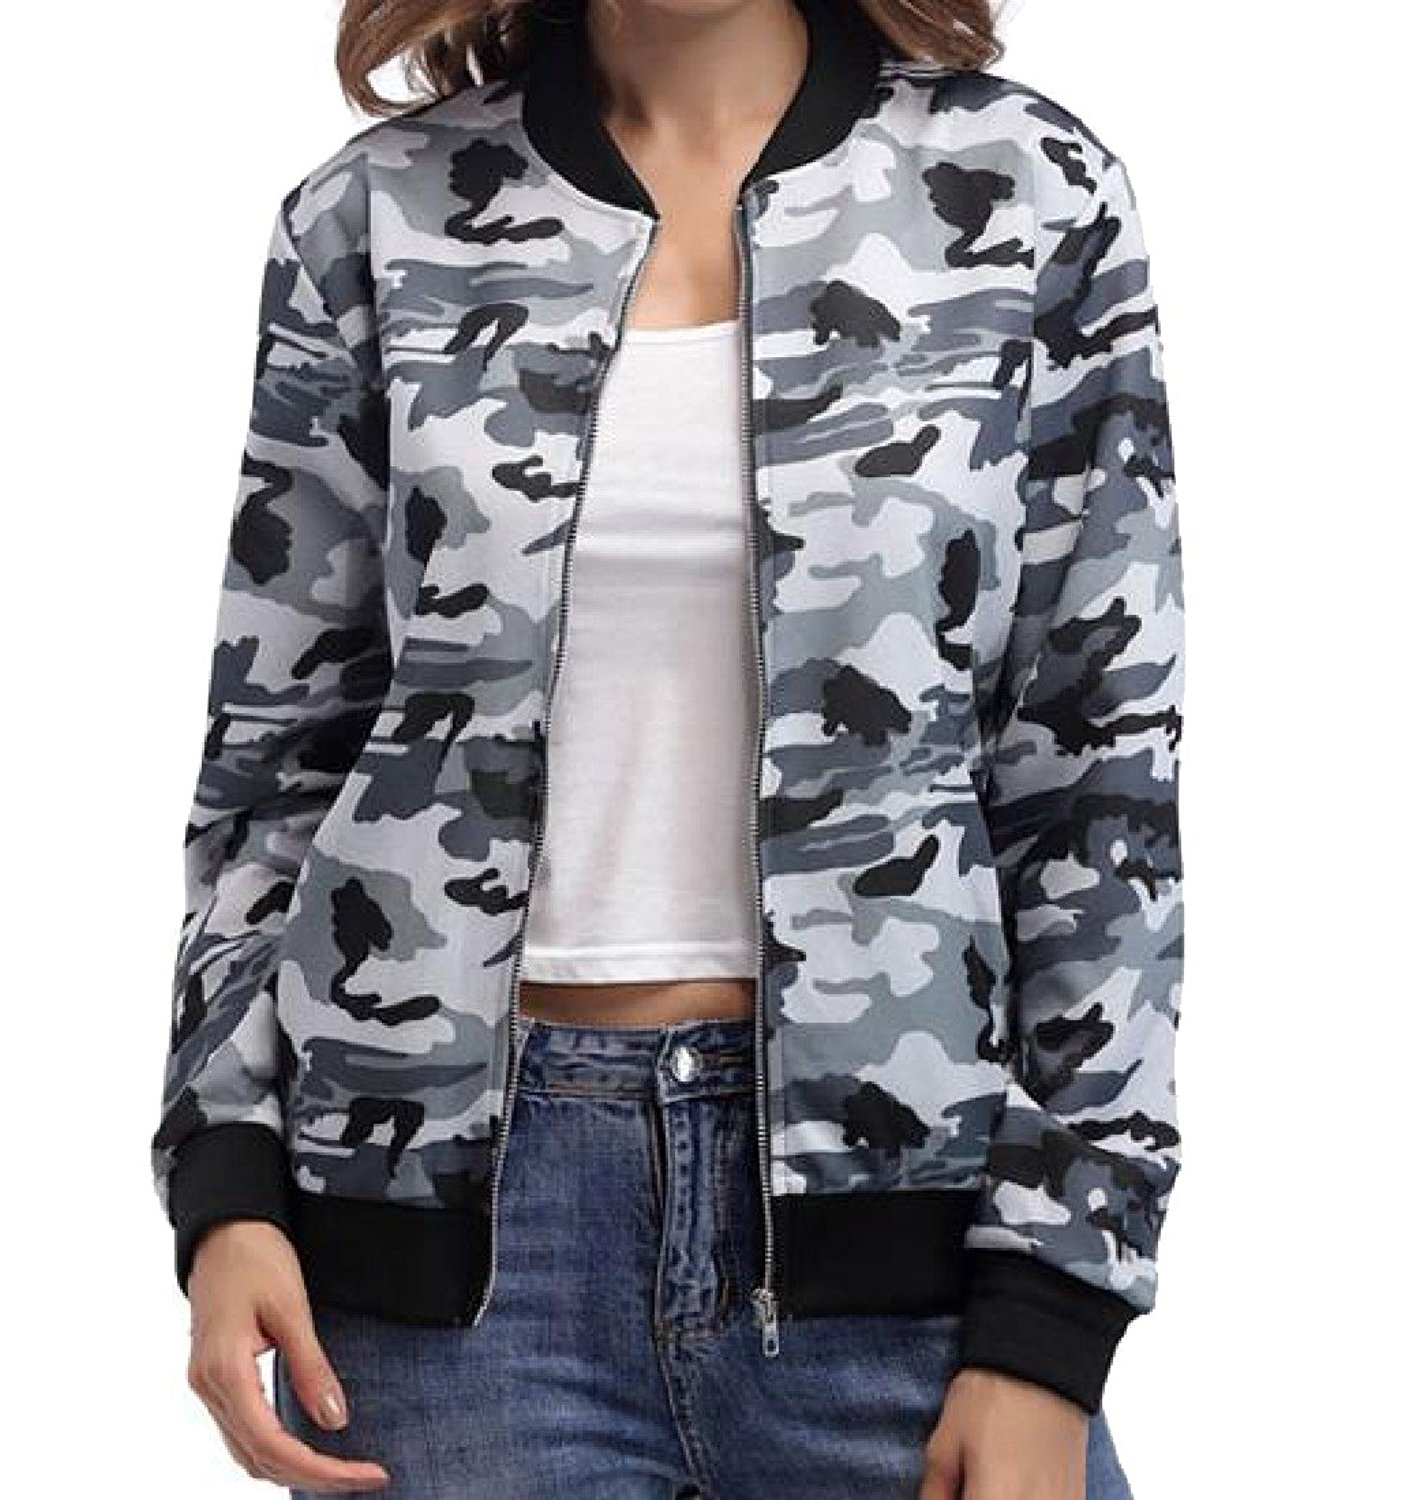 Sheng Xi Women Stitching Camouflage Stand Collar Outerwears Jackets